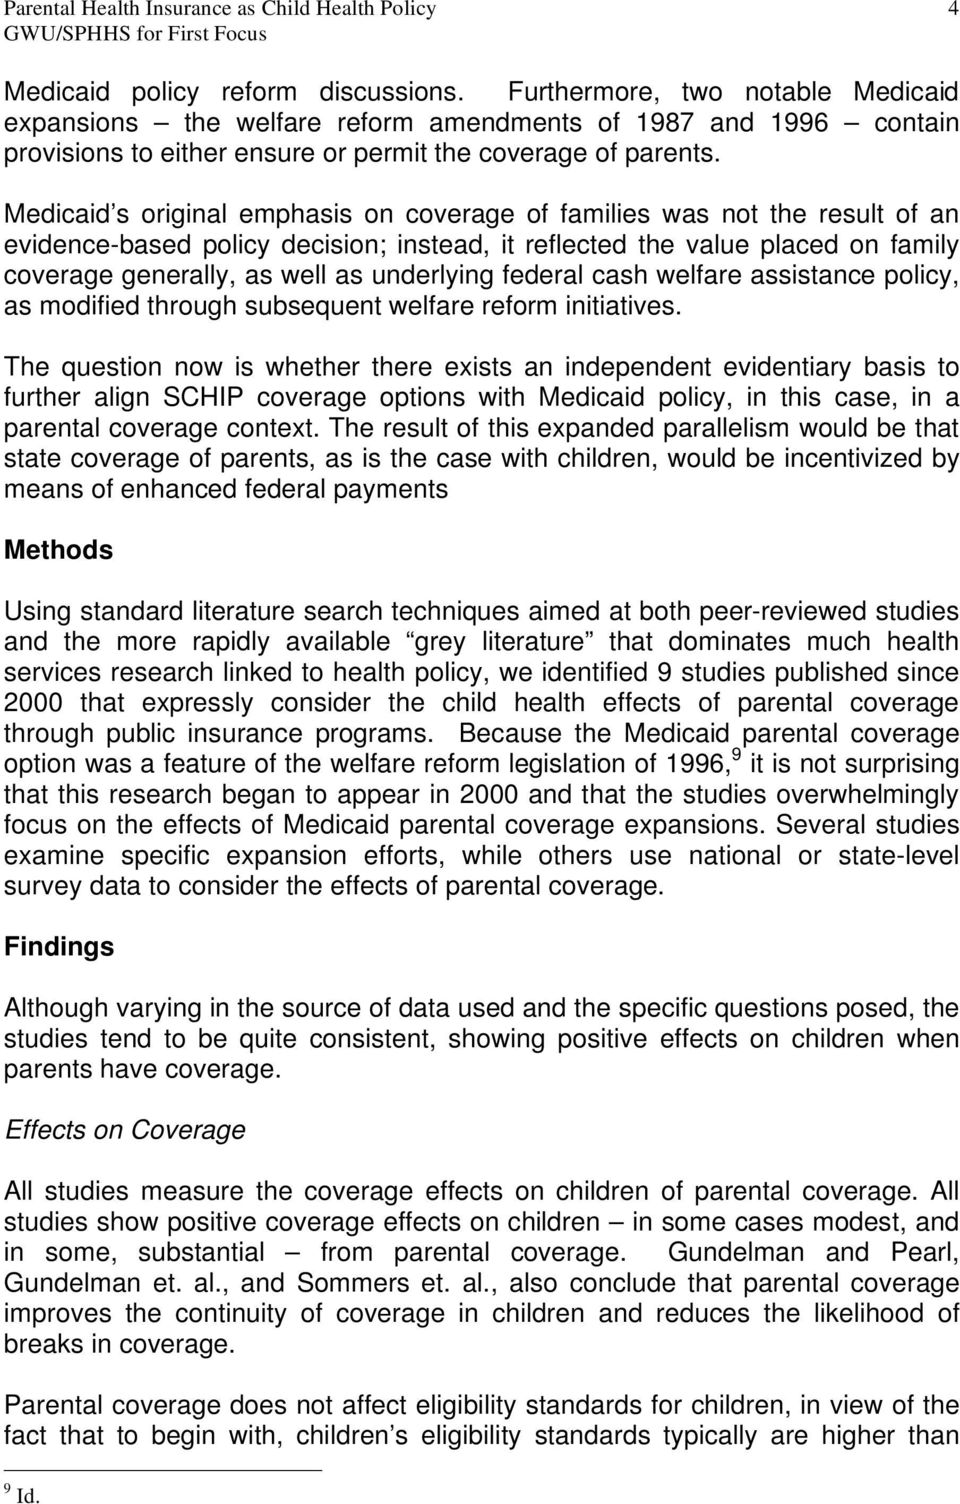 Medicaid s original emphasis on coverage of families was not the result of an evidence-based policy decision; instead, it reflected the value placed on family coverage generally, as well as